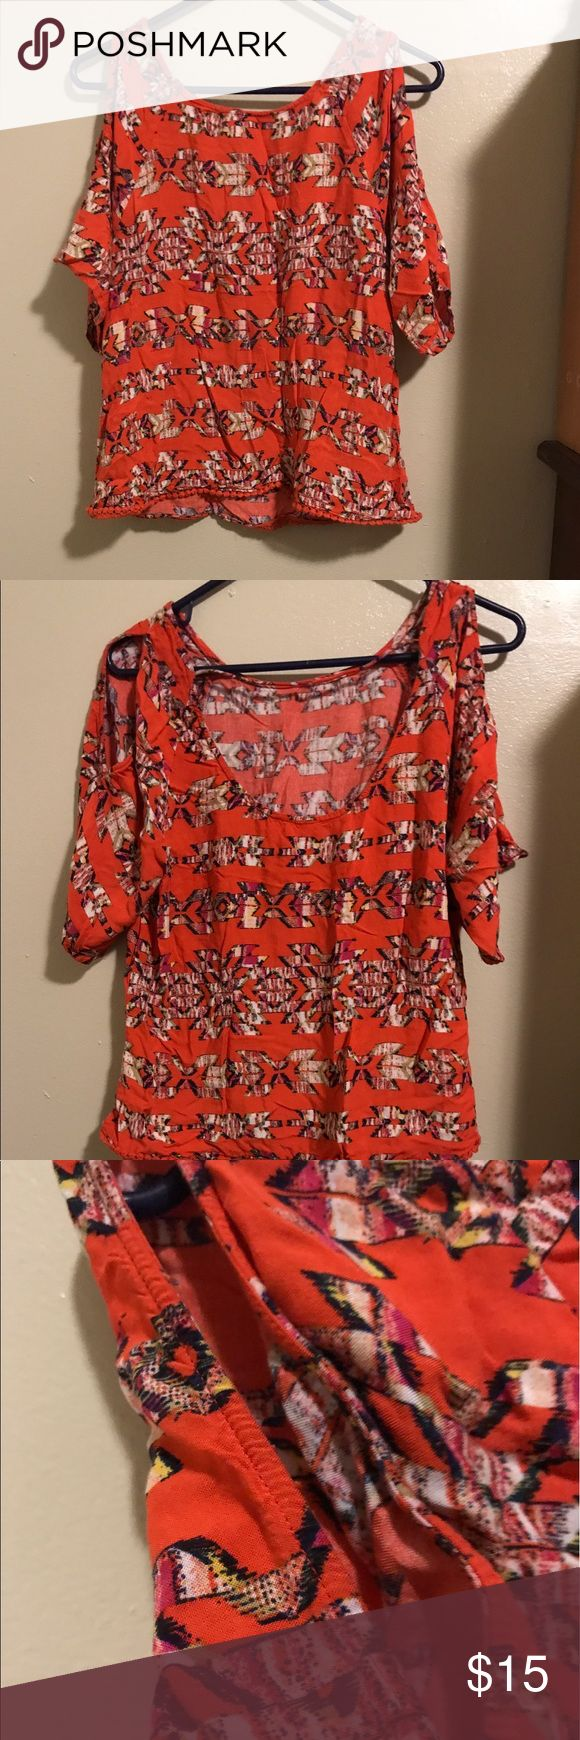 Red Camel Coral Shirt w/ cutout sleeves Size Small. No tears, rips, or stains. Only worn a few times. Red Camel Tops Blouses